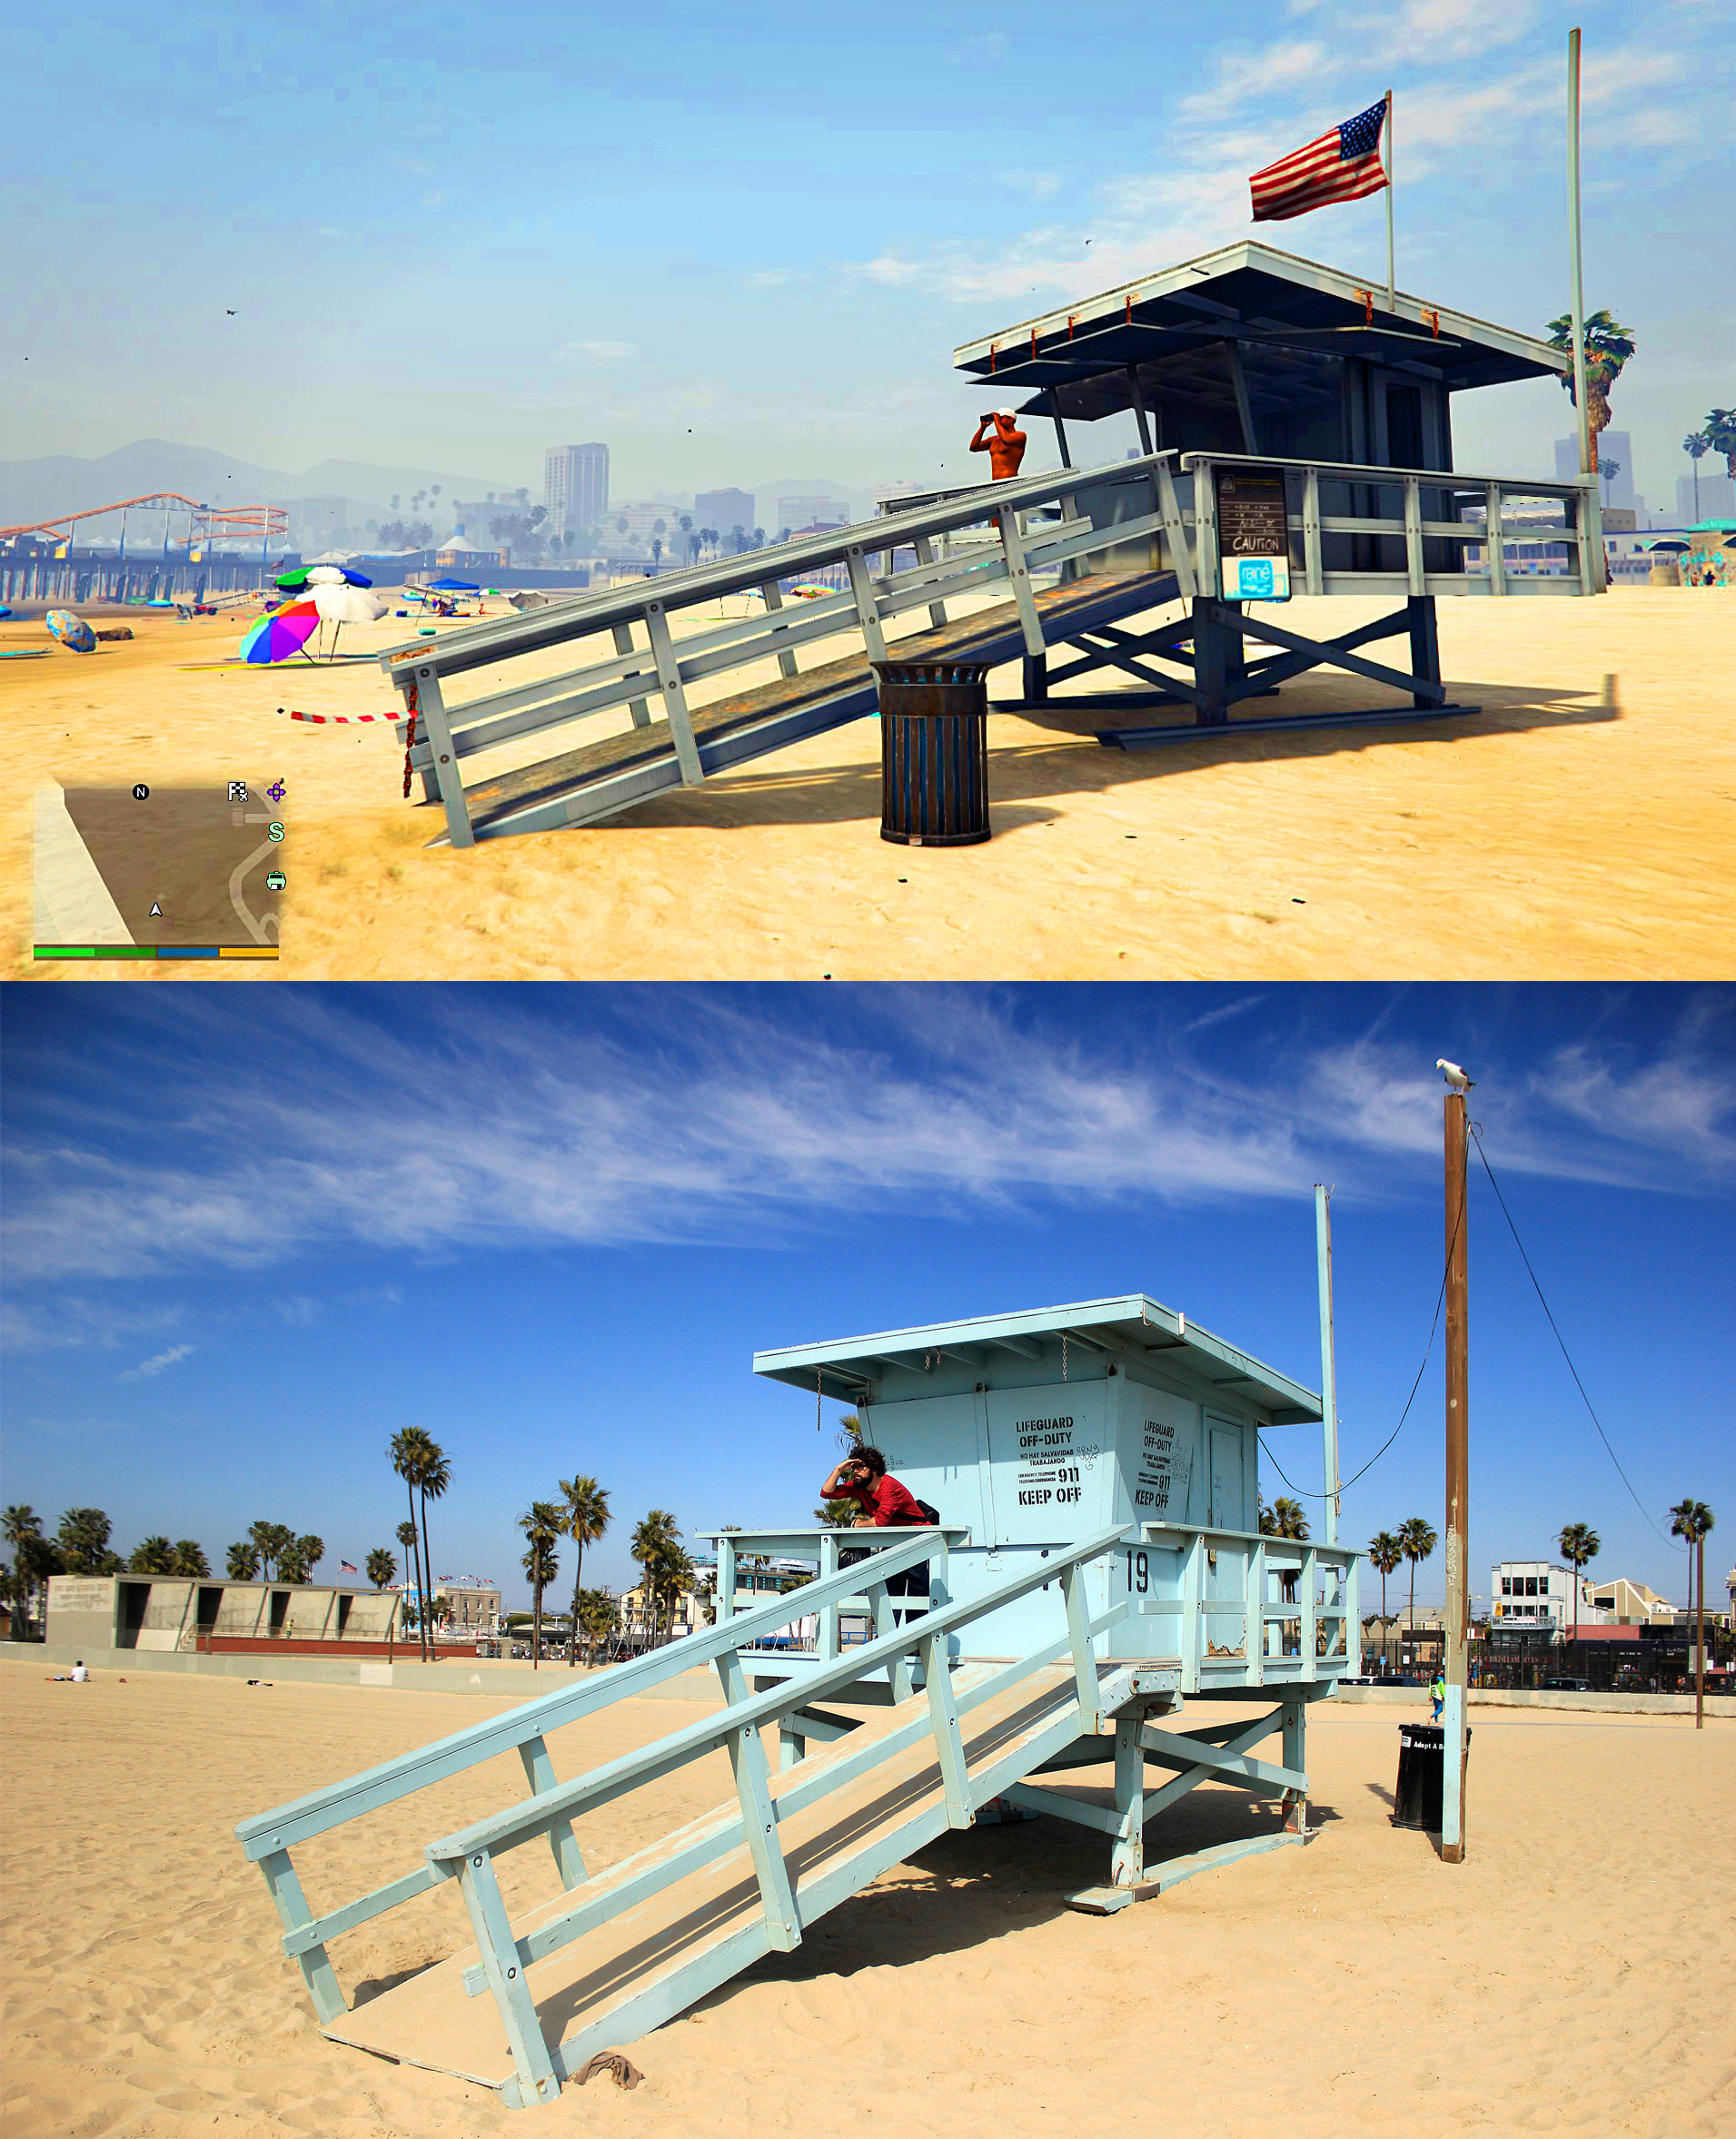 GTA V Los Santos Vs Real Life Los Angeles Comparison